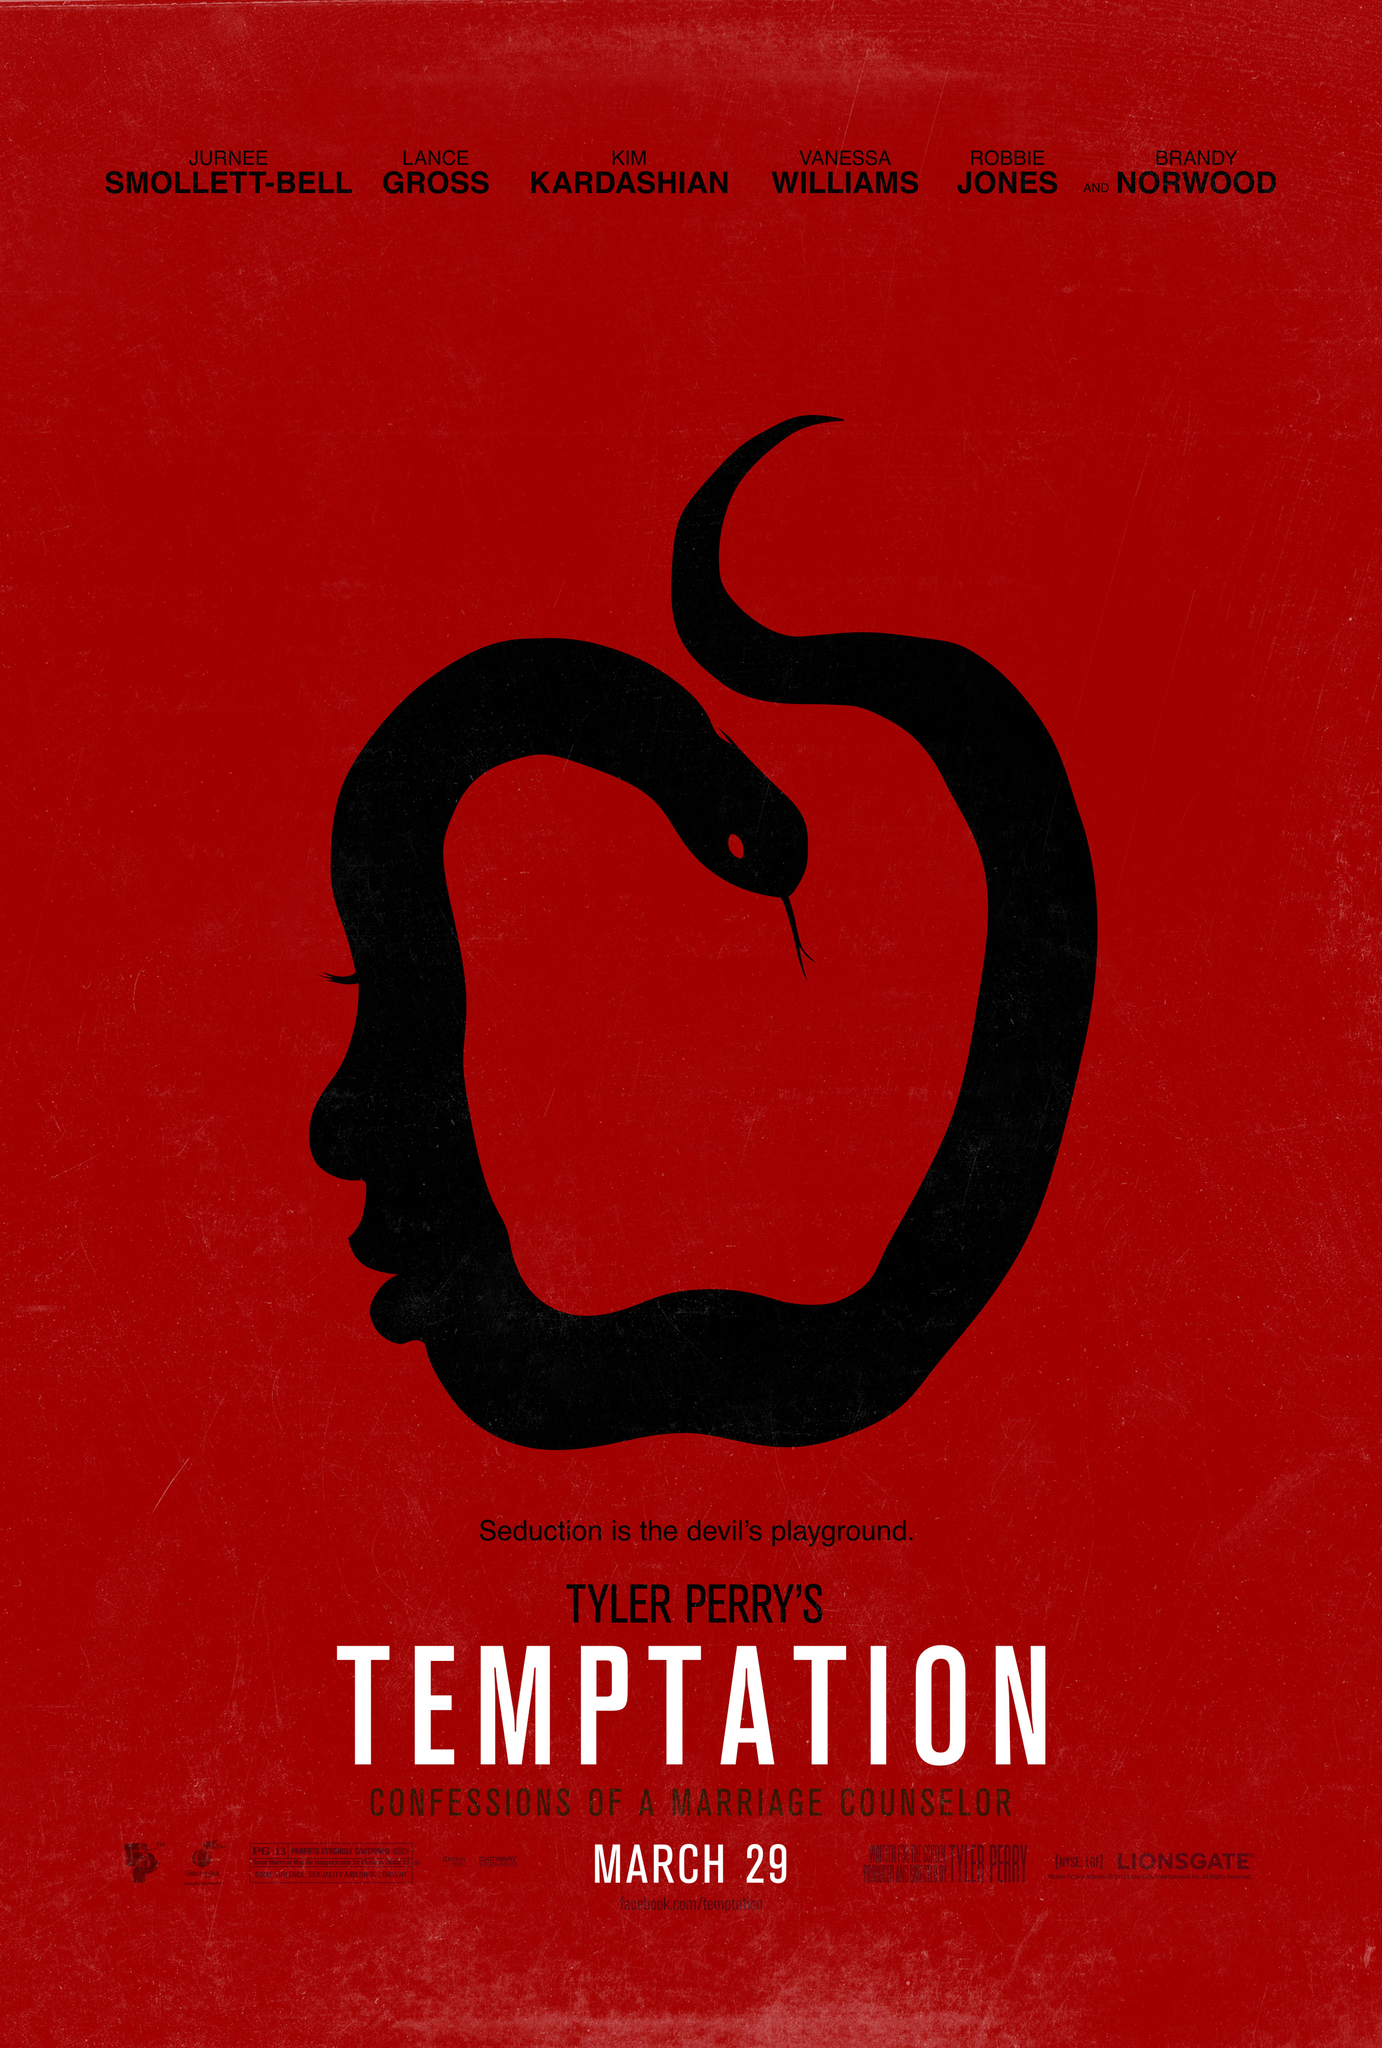 Temptation Confessions Of A Marriage Counselor 2013 Imdb